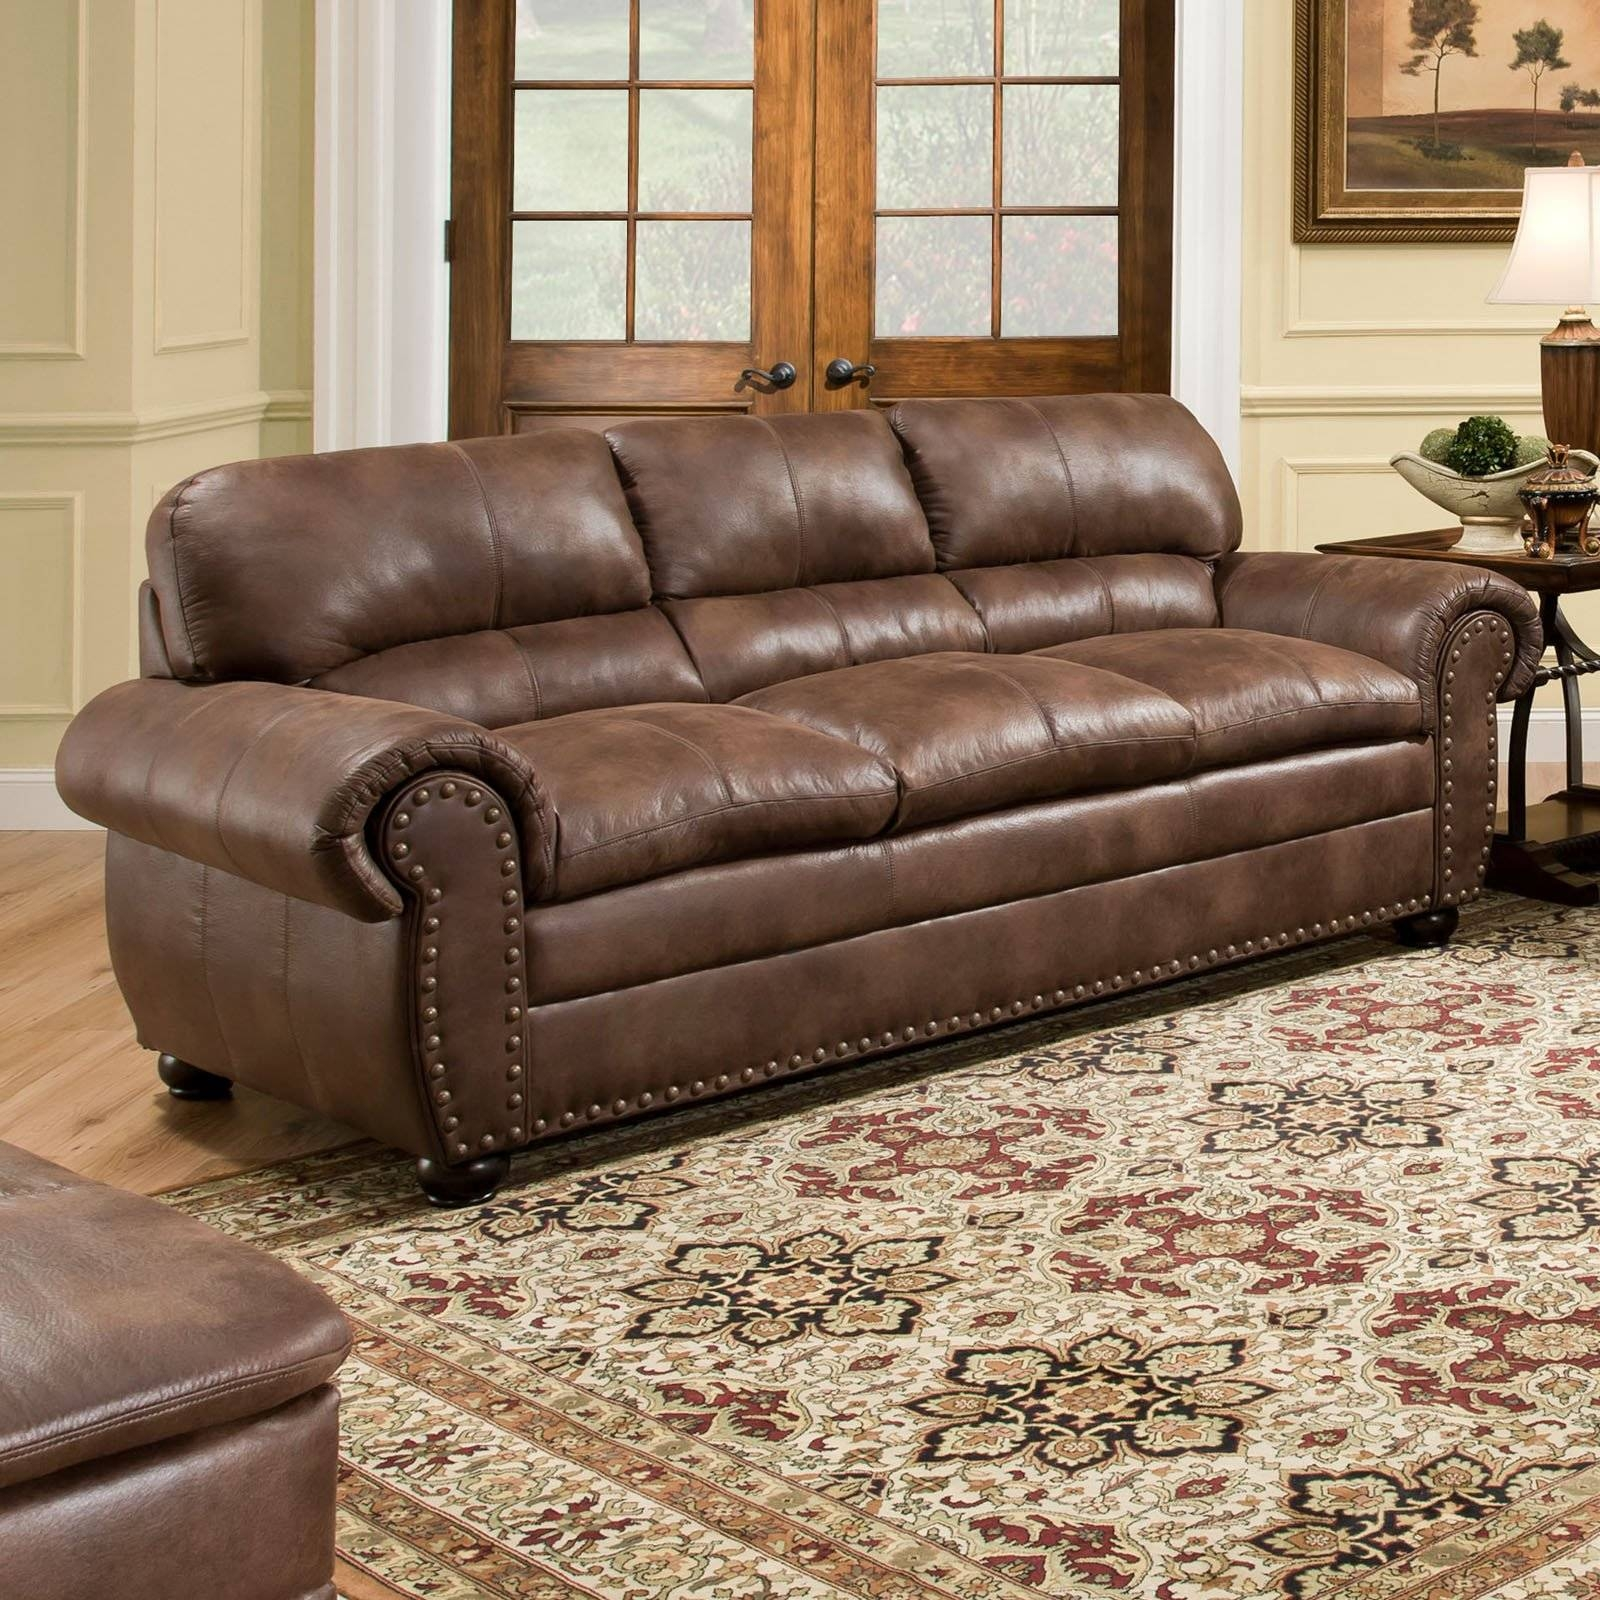 Simmons Upholstery Renegade Beautyrest Sofa – Mocha | Hayneedle In Simmons Sofa Beds (View 11 of 15)